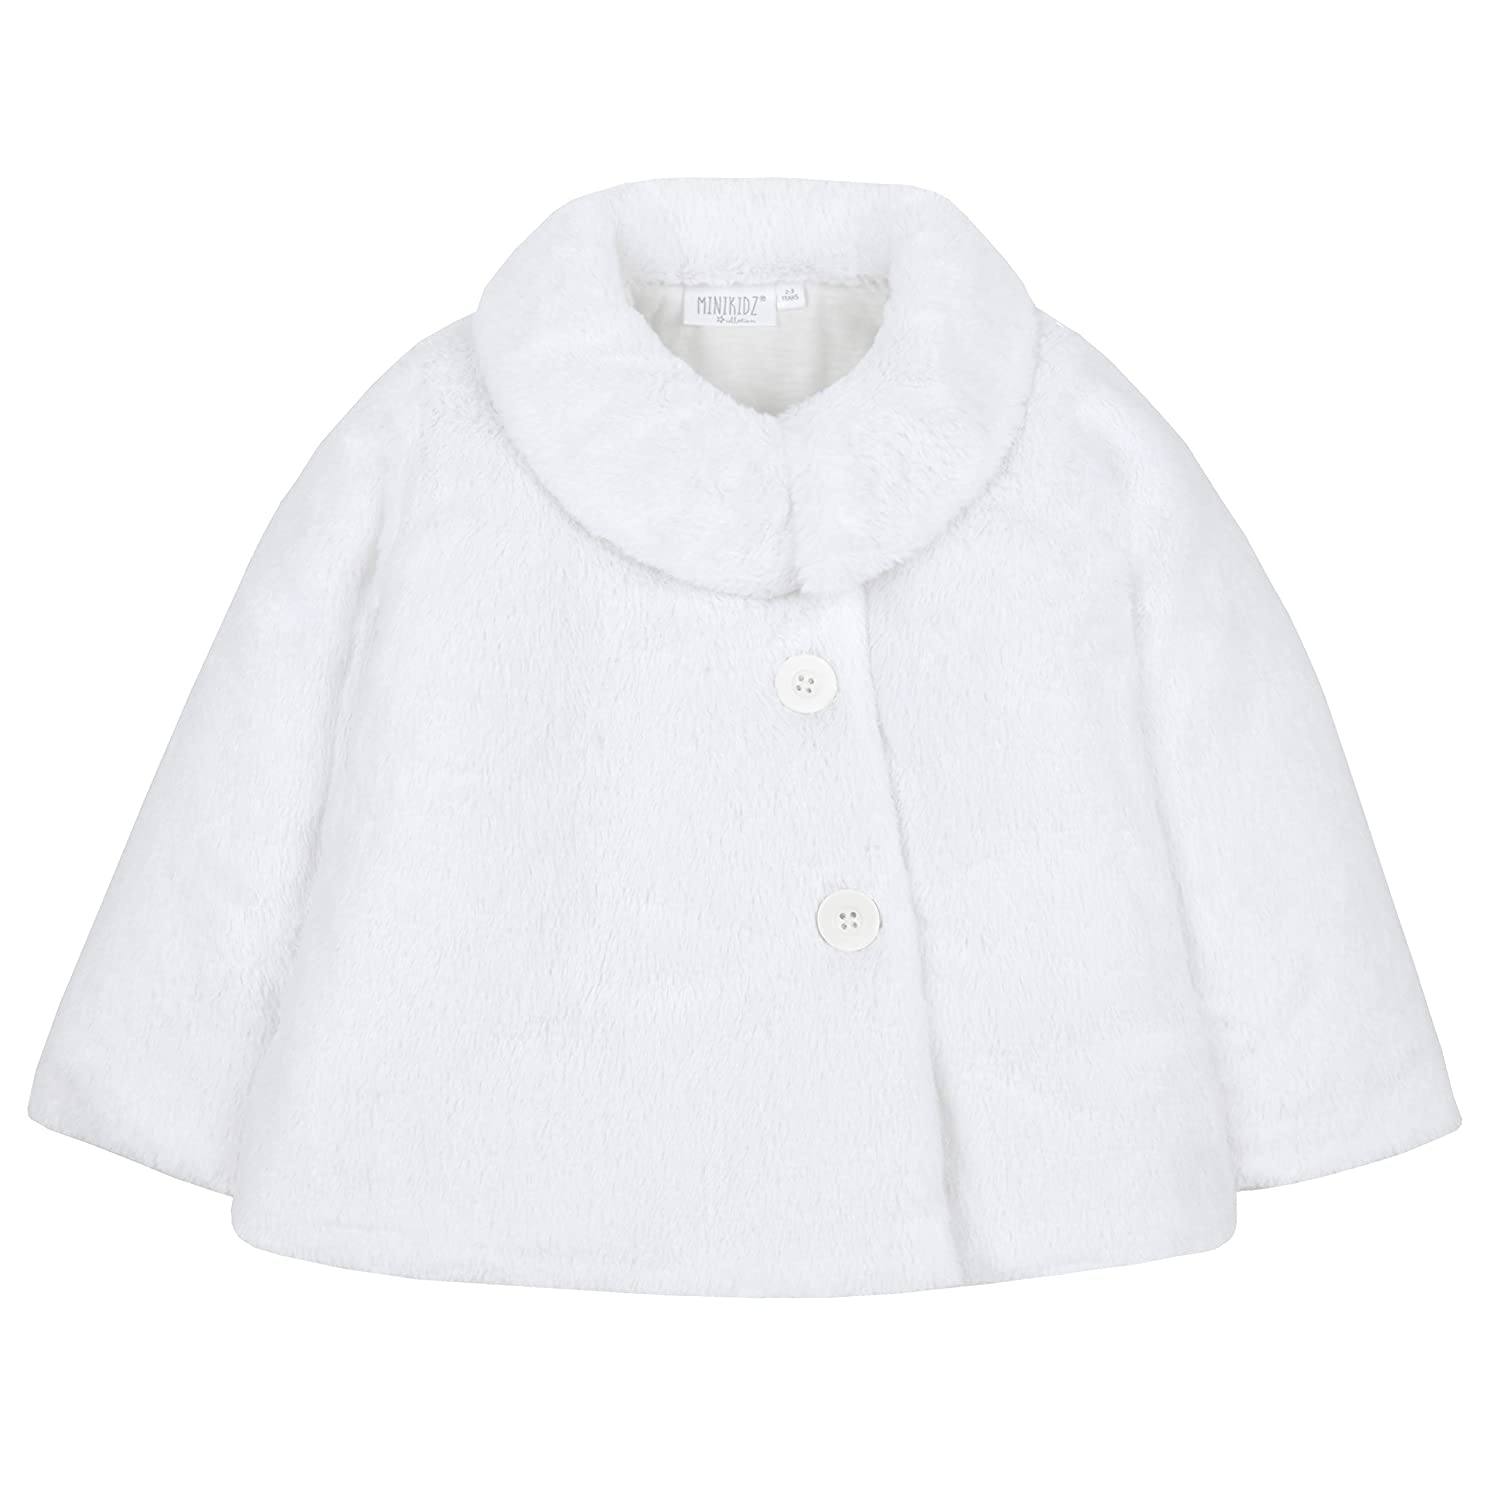 Metzuyan Infant Girls Fluffy Winter Button Up Swing Coat